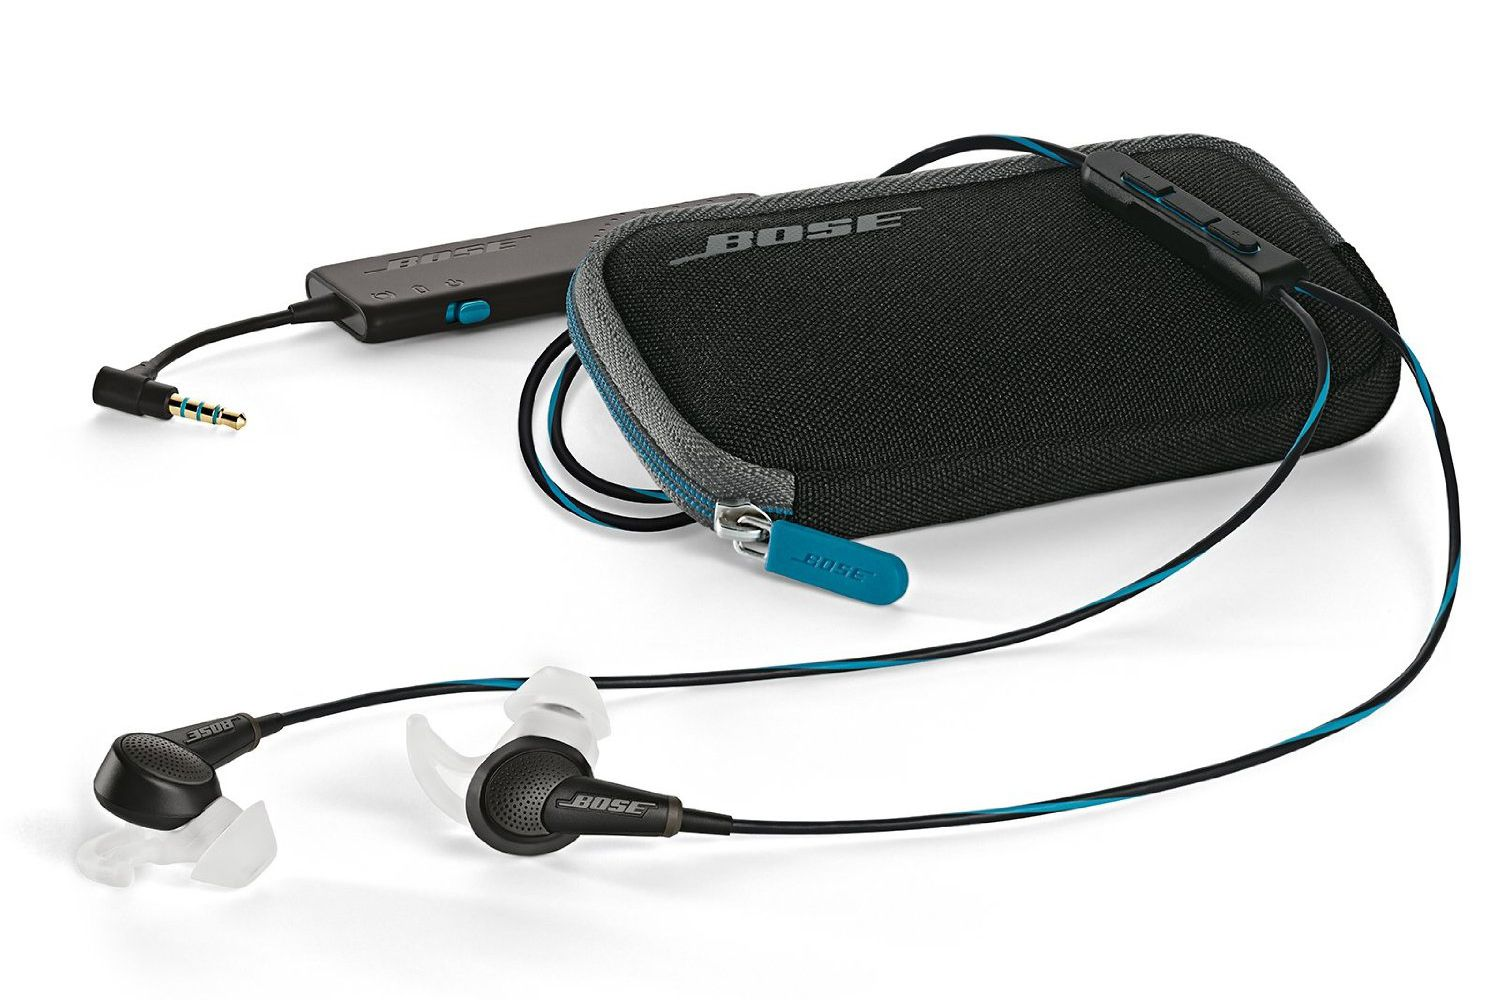 Bose Qc 20 Earphones Measurements And Review Microphone Amplifier With Noise Suppression